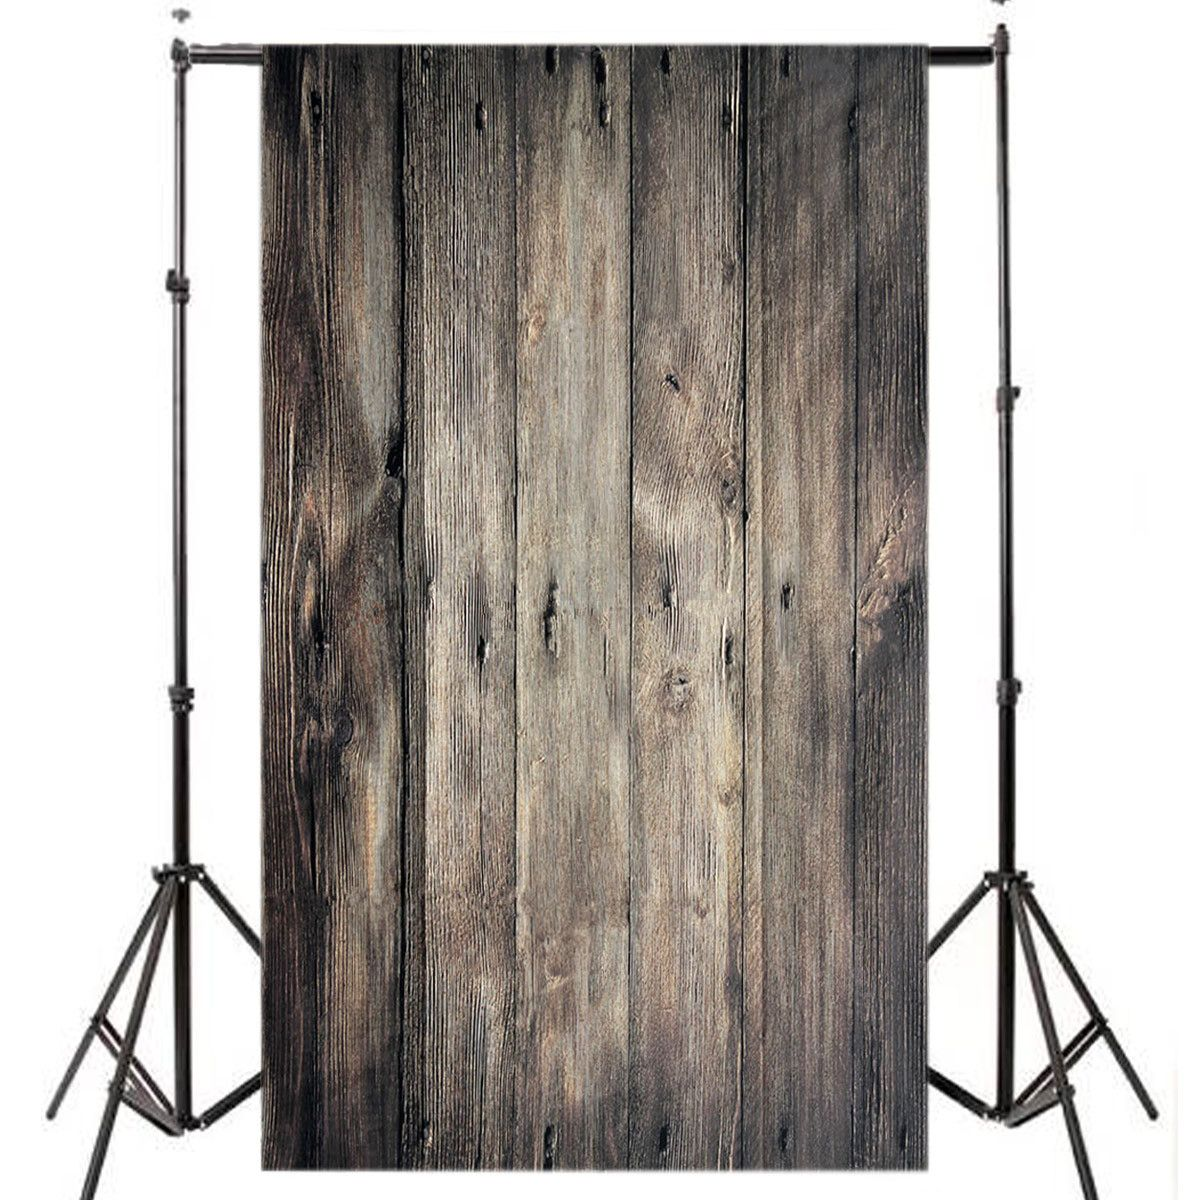 3x5FT Vintage Wooden Plank Wall Floor Costume Wedding Custom Studio Backdrops Photo Background Vinyl New piano backdrops wooden floor wedding stor photo props background vinyl 5x7ft or 3x5ft